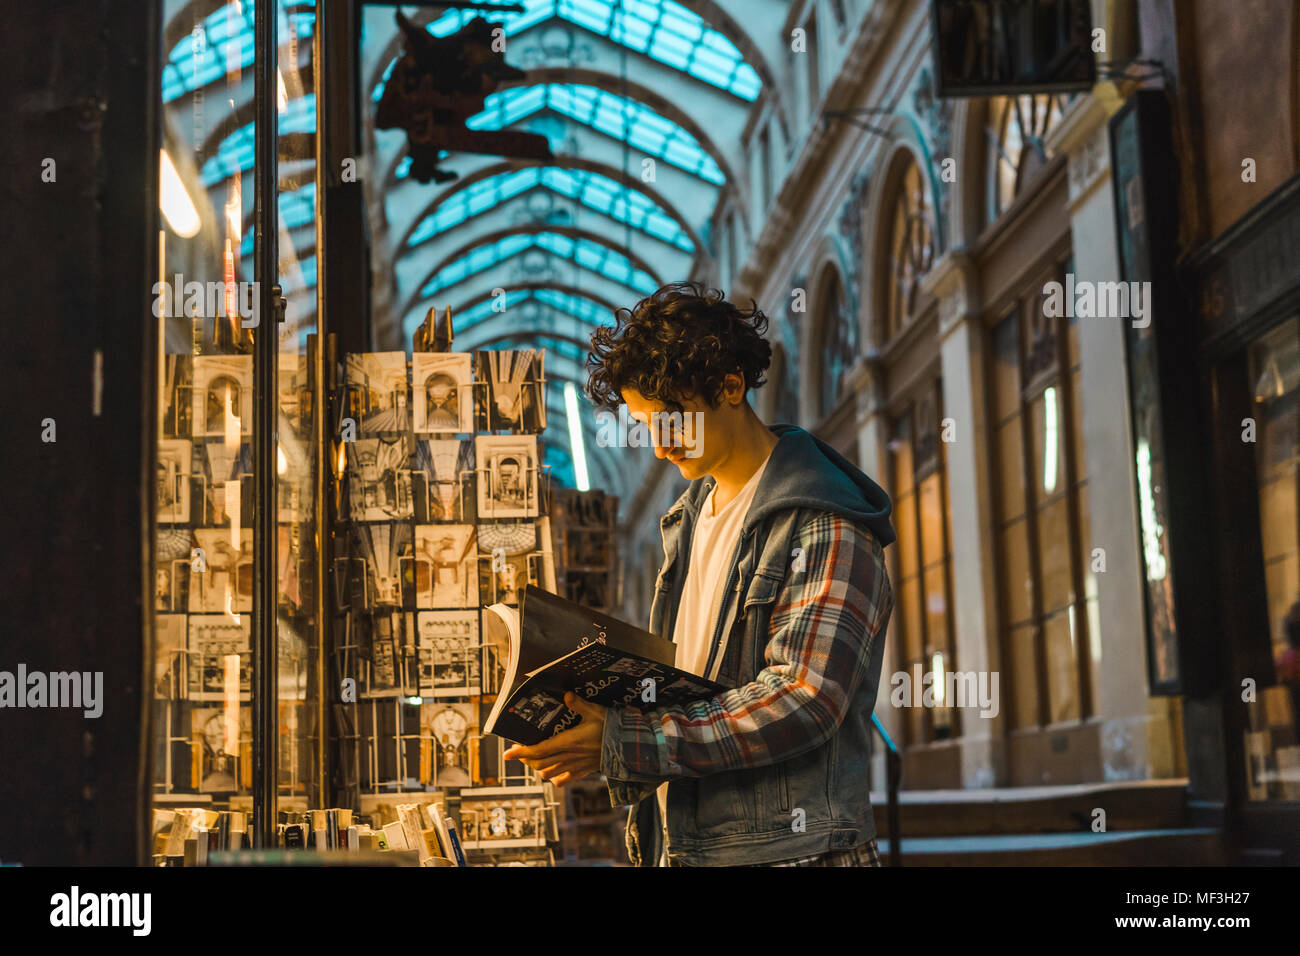 Young man looking at book - Stock Image